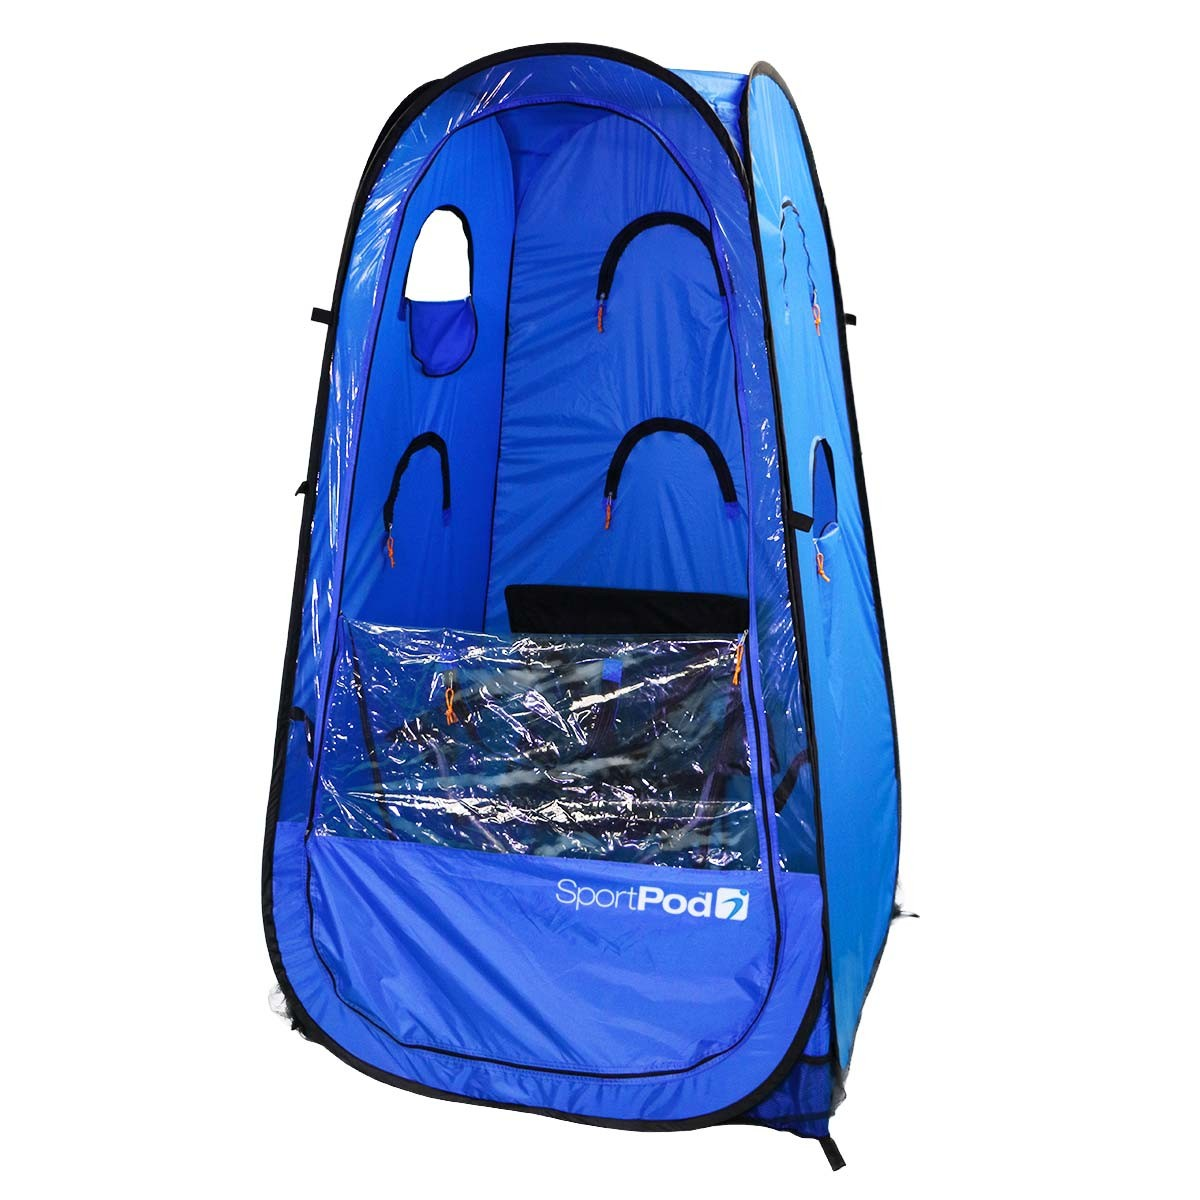 Actionpod Undercover All Weather Sportpod Pop Up